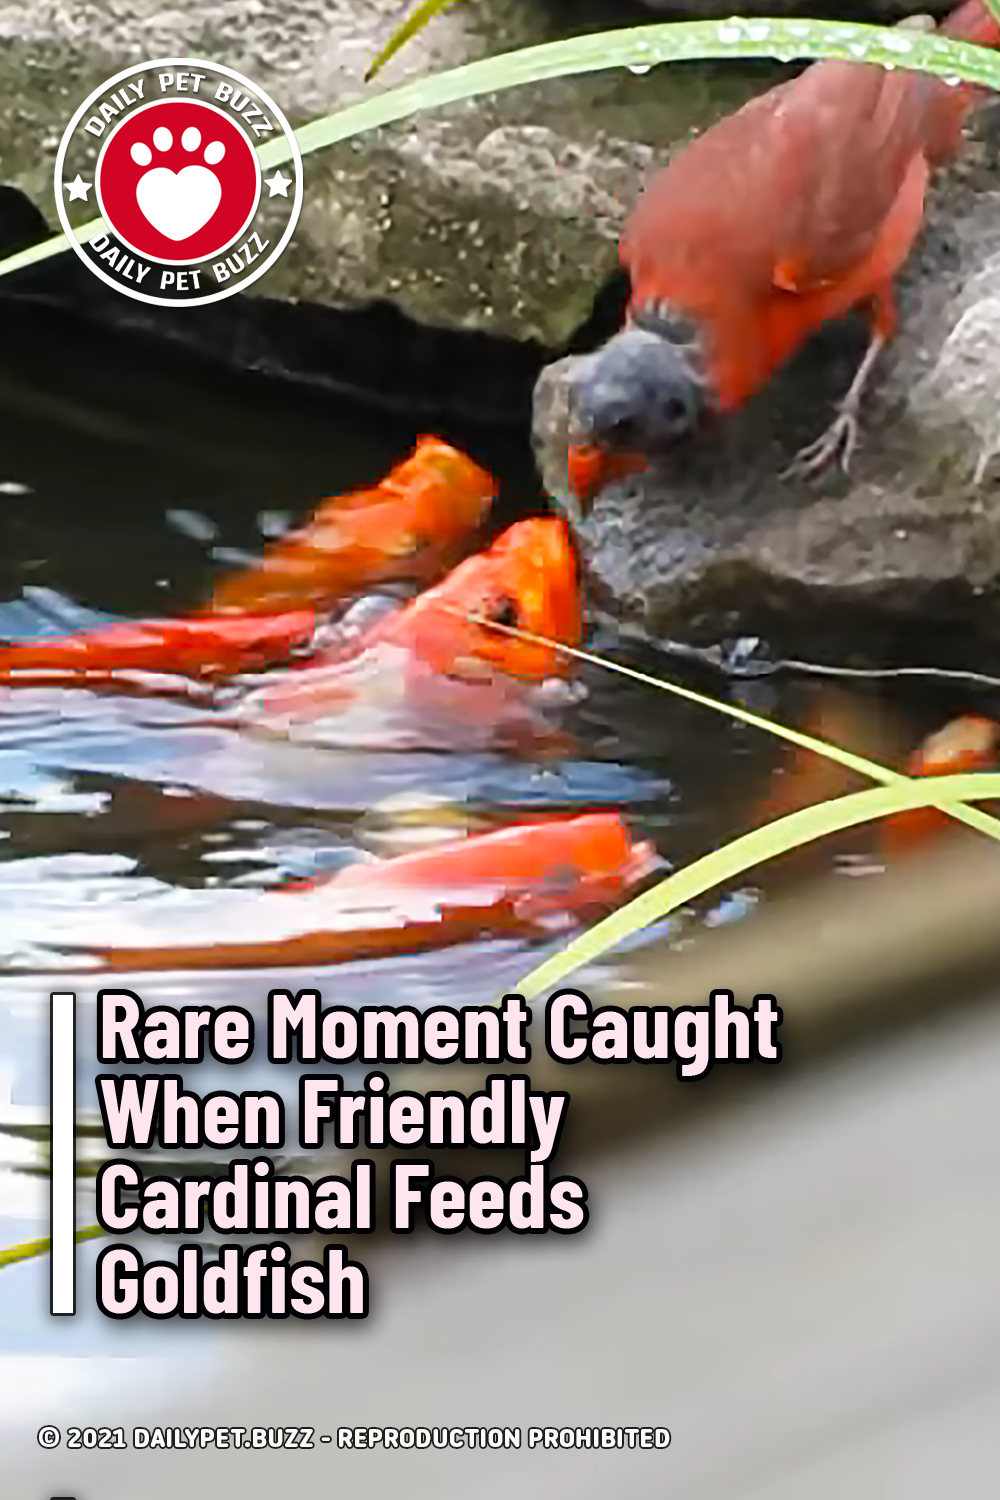 Rare Moment Caught When Friendly Cardinal Feeds Goldfish